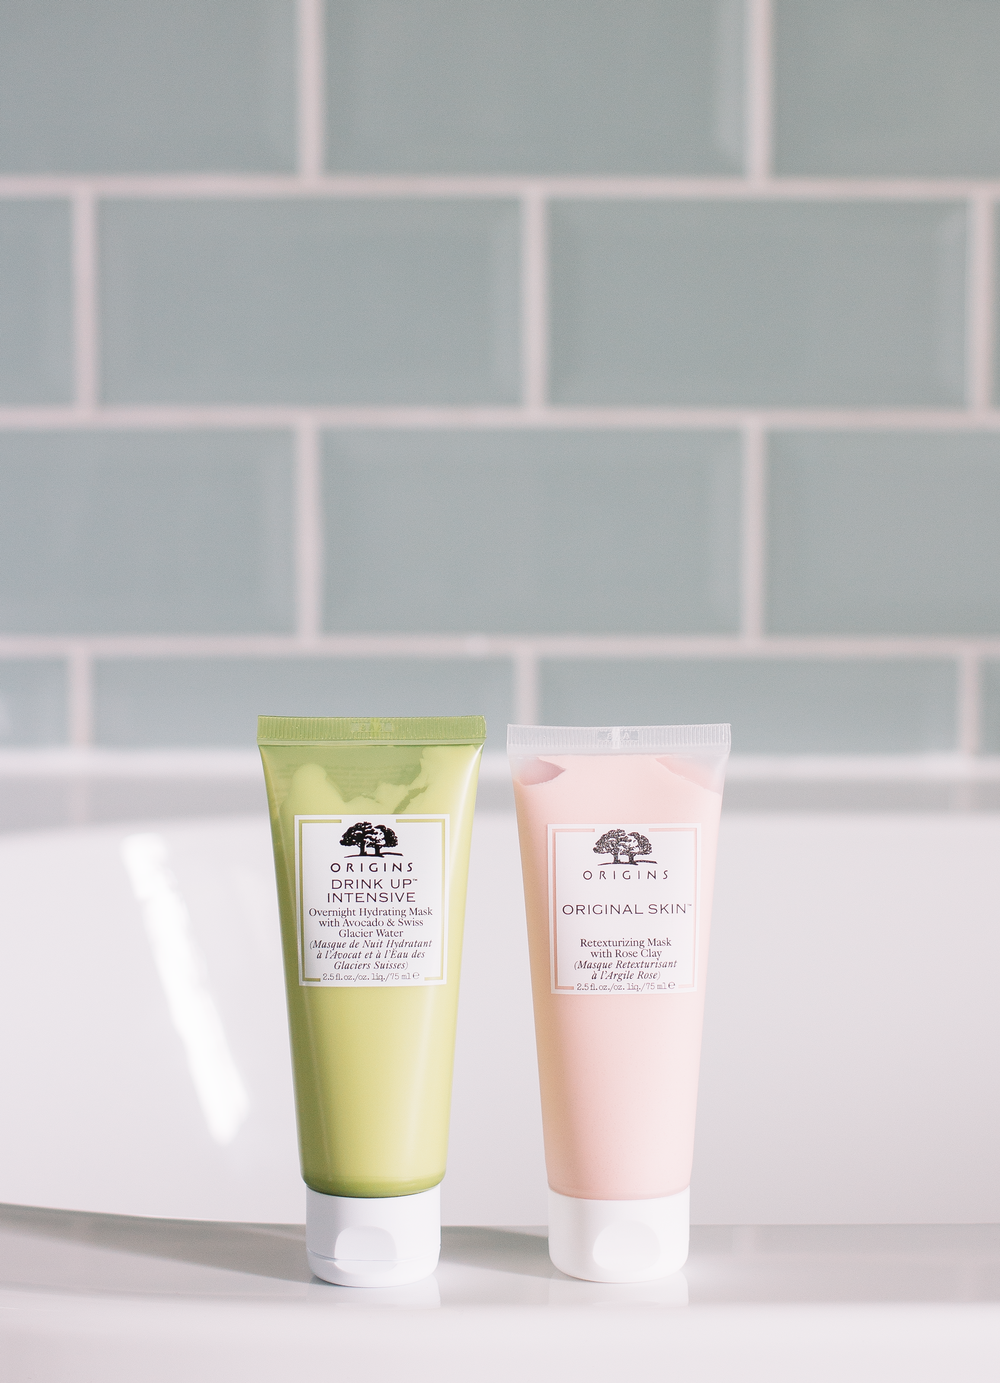 origins - If you've been reading my blog for a long time then you will know that Origins is a brand that I've loved for years. In between 2012 and 2014 I pretty much only used Origins when it came to my serums, eye cream, and moisturisers. In recent years they're not a brand that I've gravitated towards as much but they're still one I very much adore and know that I can turn to and get results. Their brightening, mega mushroom, make a difference and ginzing range are particular favourites of mine. And out of everything I've tried the only items that I've never truly got on with is the cleansers. I'm currently using the Original Skin Retexturizing Mask with Rose Clay (gifted) and it's such a lovely mask for when your skin might feel a little spotty and the texture might feel less than desirable. It's a 2 in 1 as the clay not only gets everything out of your pores than you don't want in there but it also exfoliates the skin without aggravating it and causing unnecessary redness. This would be a brilliant option before a big event as it leaves my complexion feeling so fresh and things instantly look better. Price wise I wouldn't say Origins is the most affordable brand by any means but for things like moisturisers and serums, it's worth the investment. And as it's part of the Estée Lauder family you can often find items reduced at a CC outlet!